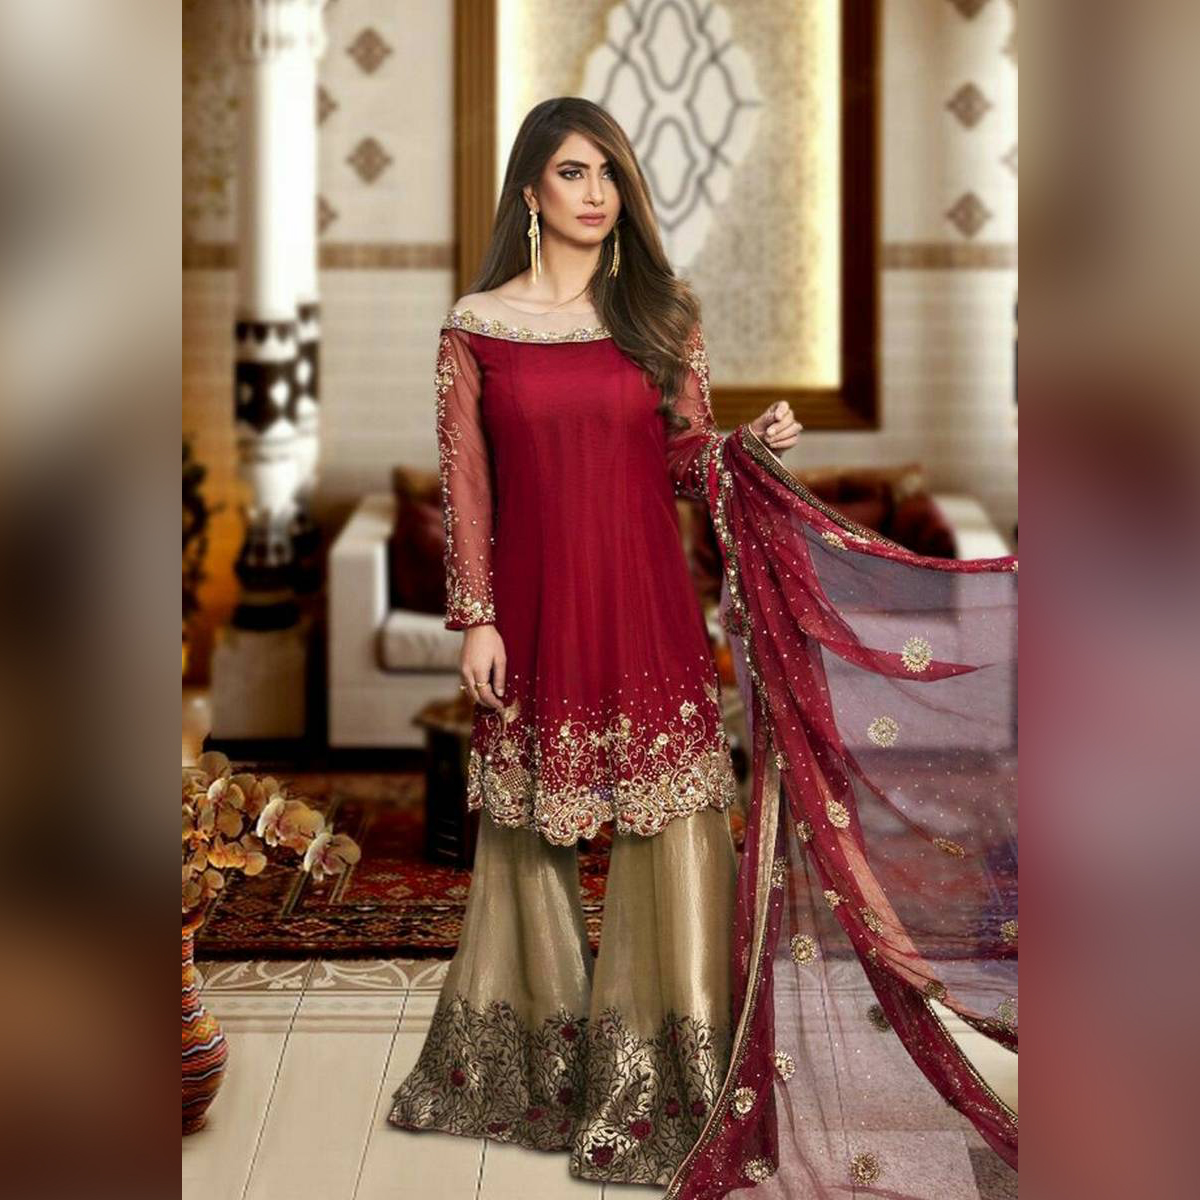 Partywear and Bridal cloth suit fashion designer fancy dress  Ston work  EMBROIDERED DETAILS Embroidered front Embroidered back Embroidered sleeves Embroidered neck Embroidered daman Embroidered Dupatta Embroidered sik trouser